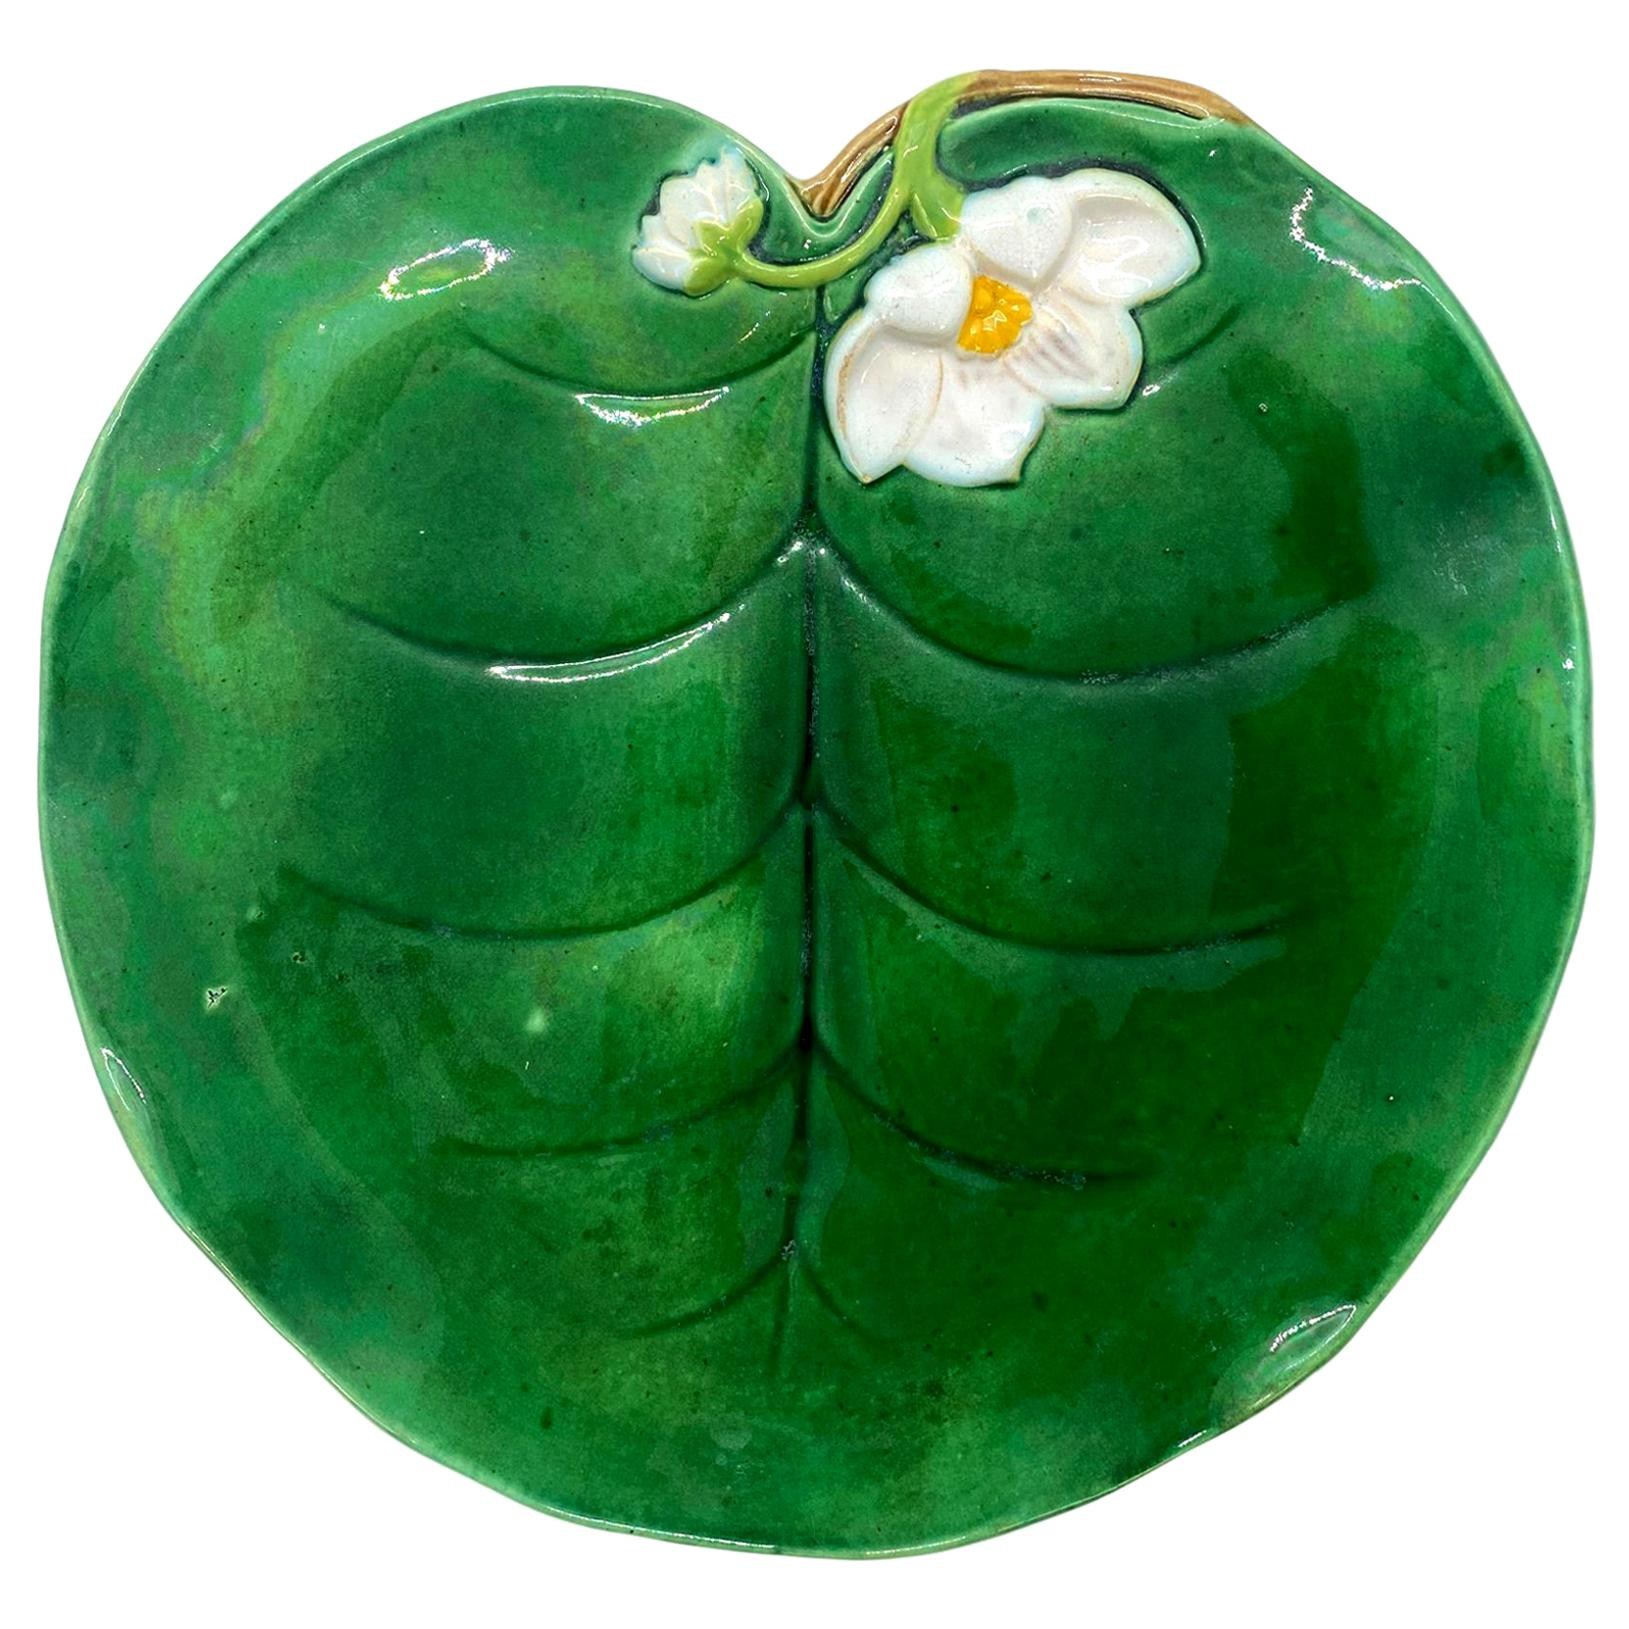 George Jones Majolica Water Lily Plate in Lush Shades of Green, English, 1877